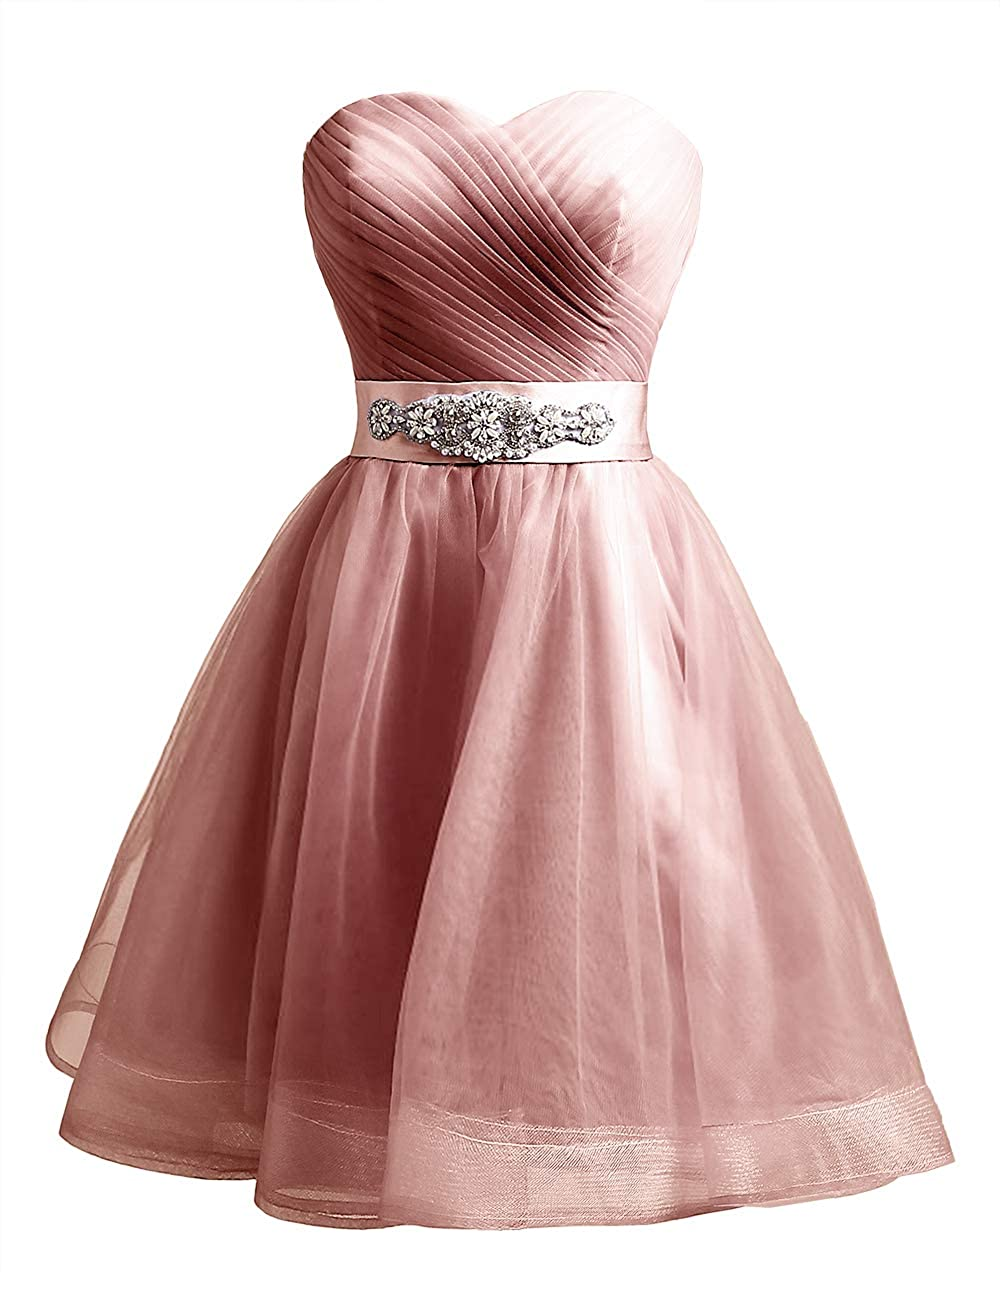 bluesh Uther Sweetheart Beaded ALine Homecoming Dress Short Cocktail Dress Tulle Porm Gown